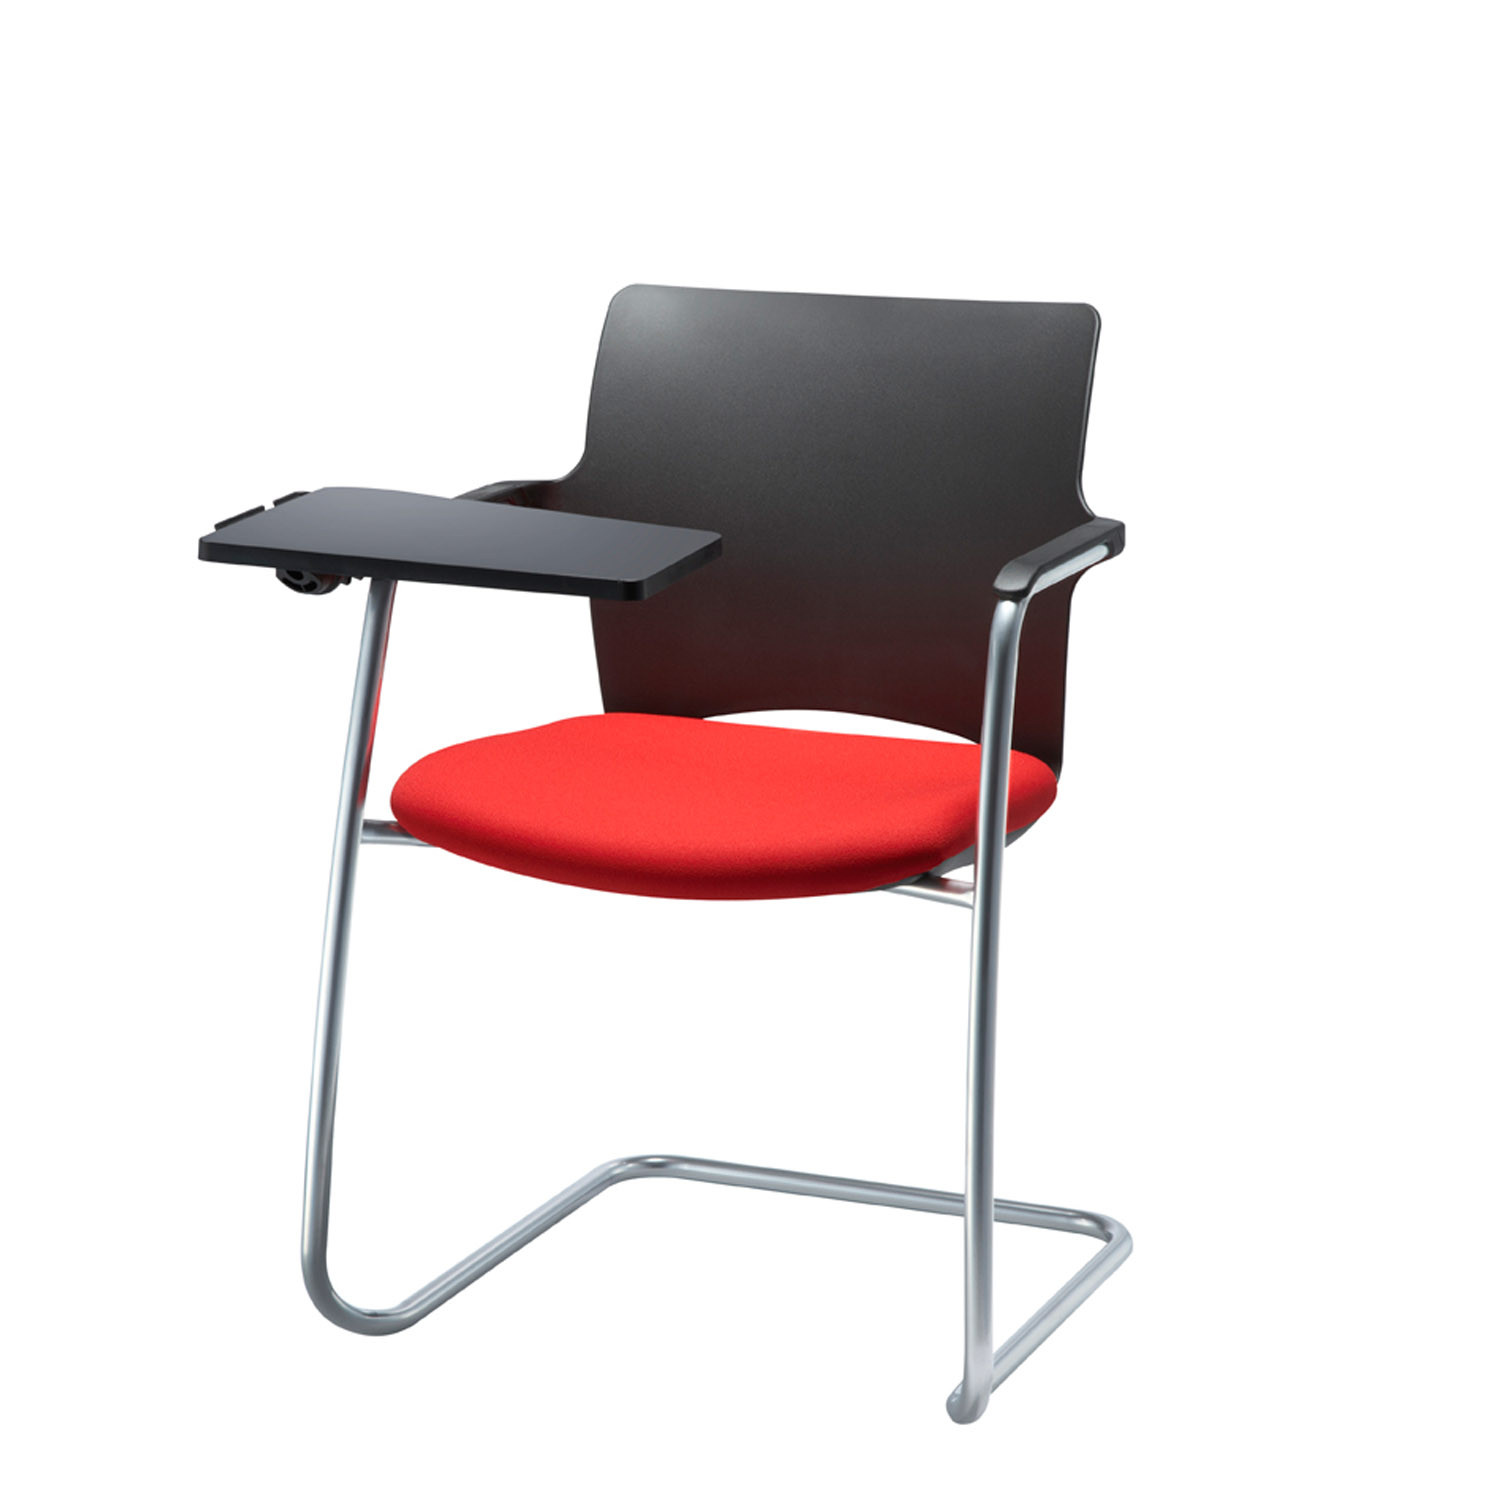 One Meeting Chair with Writing Tablet